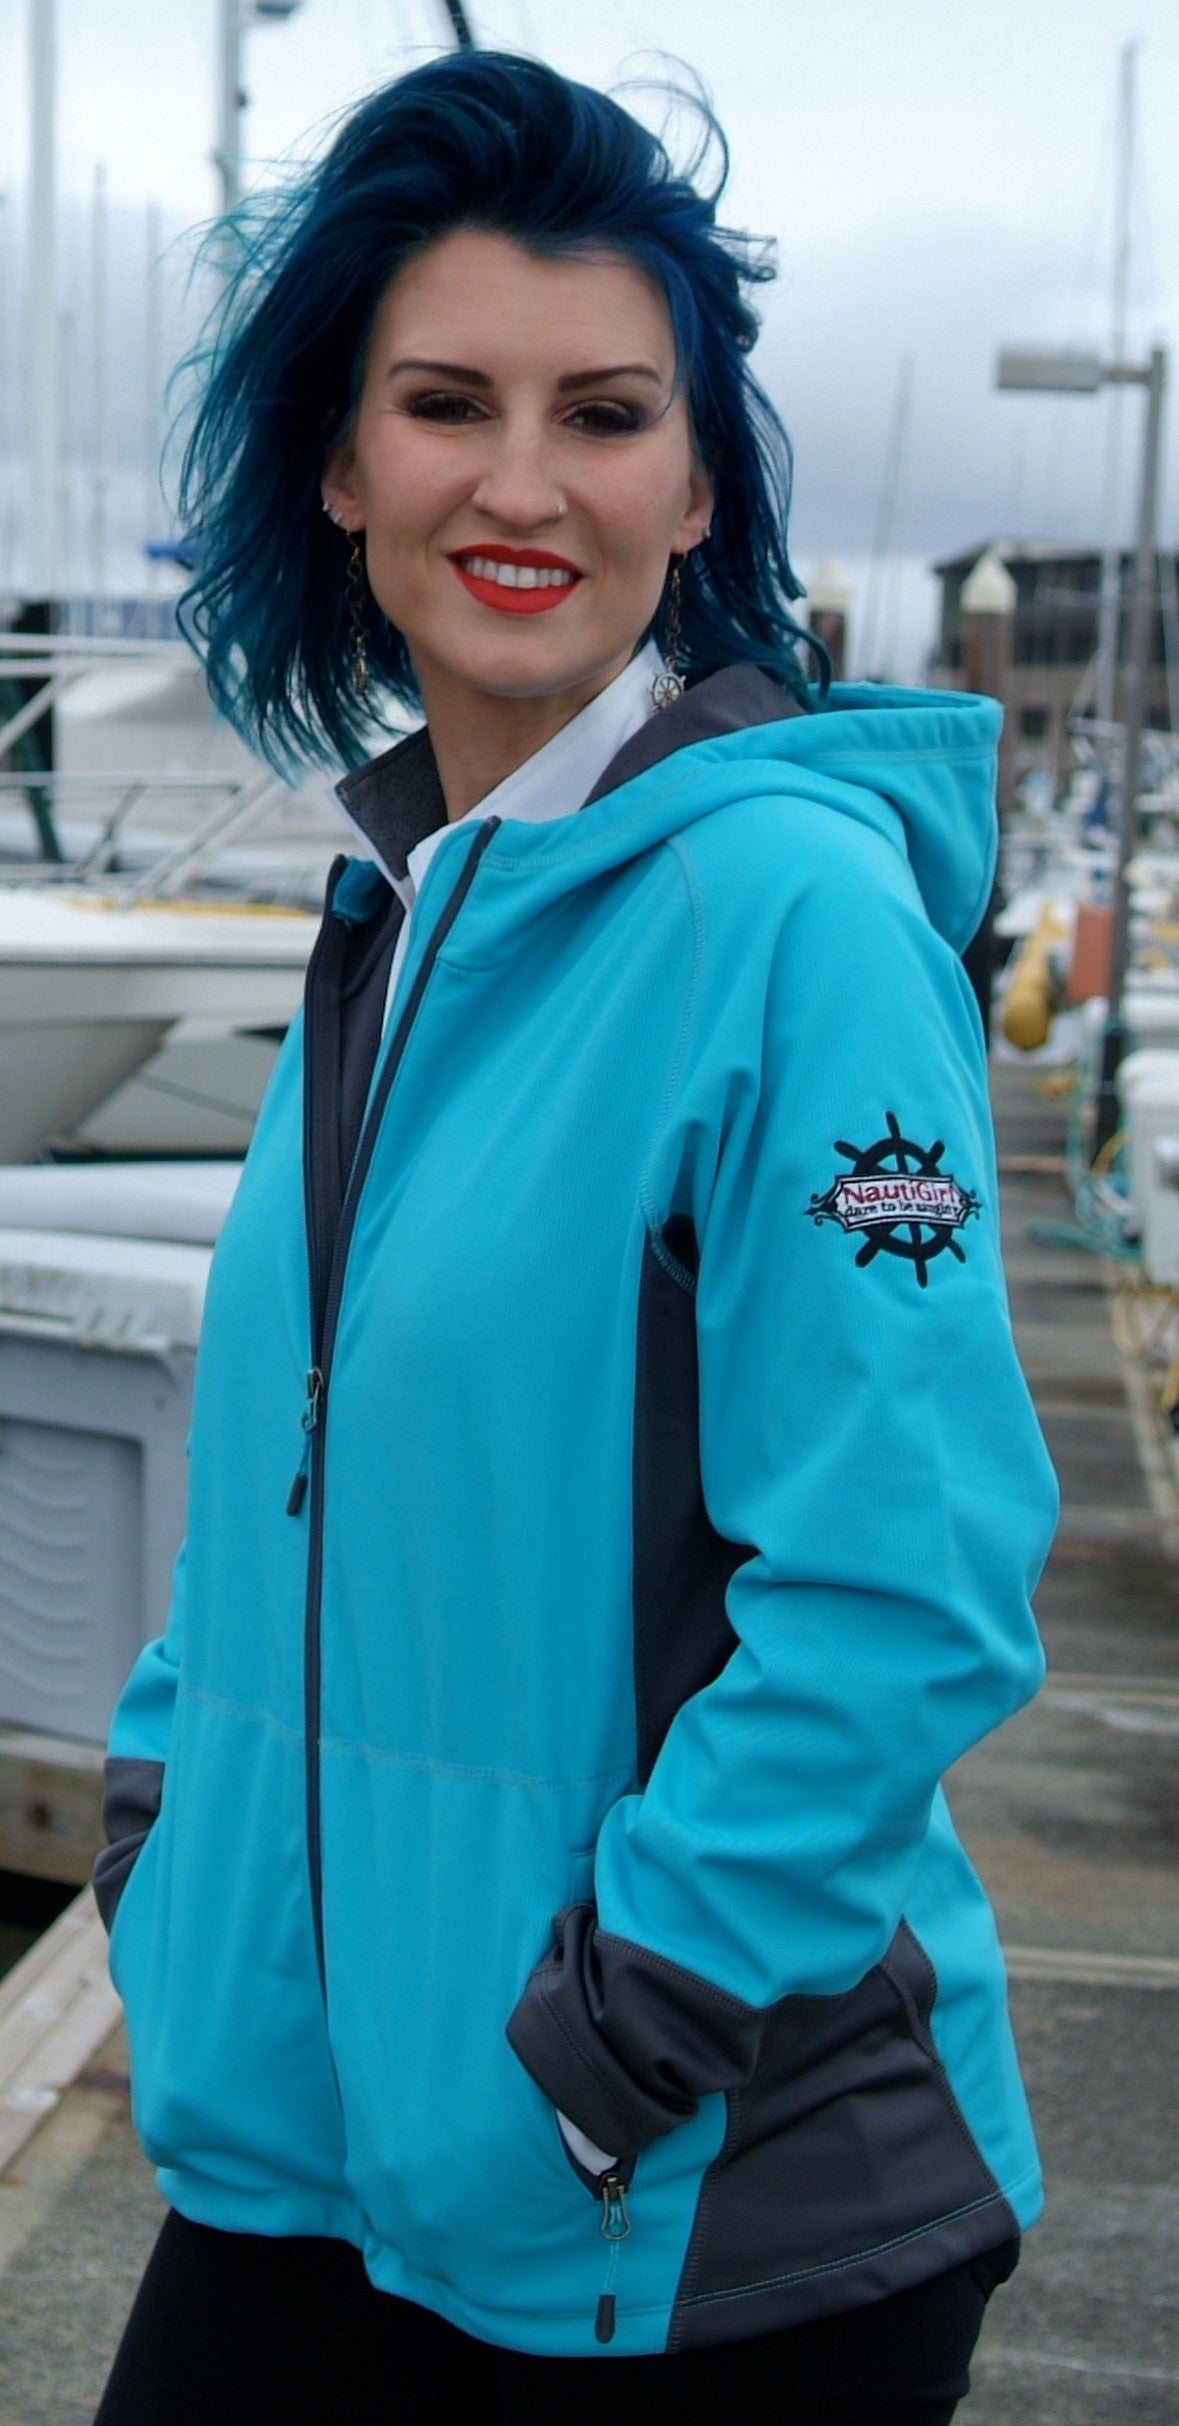 NEW! NautiGirl Vertical Hooded Soft Shell Jacket